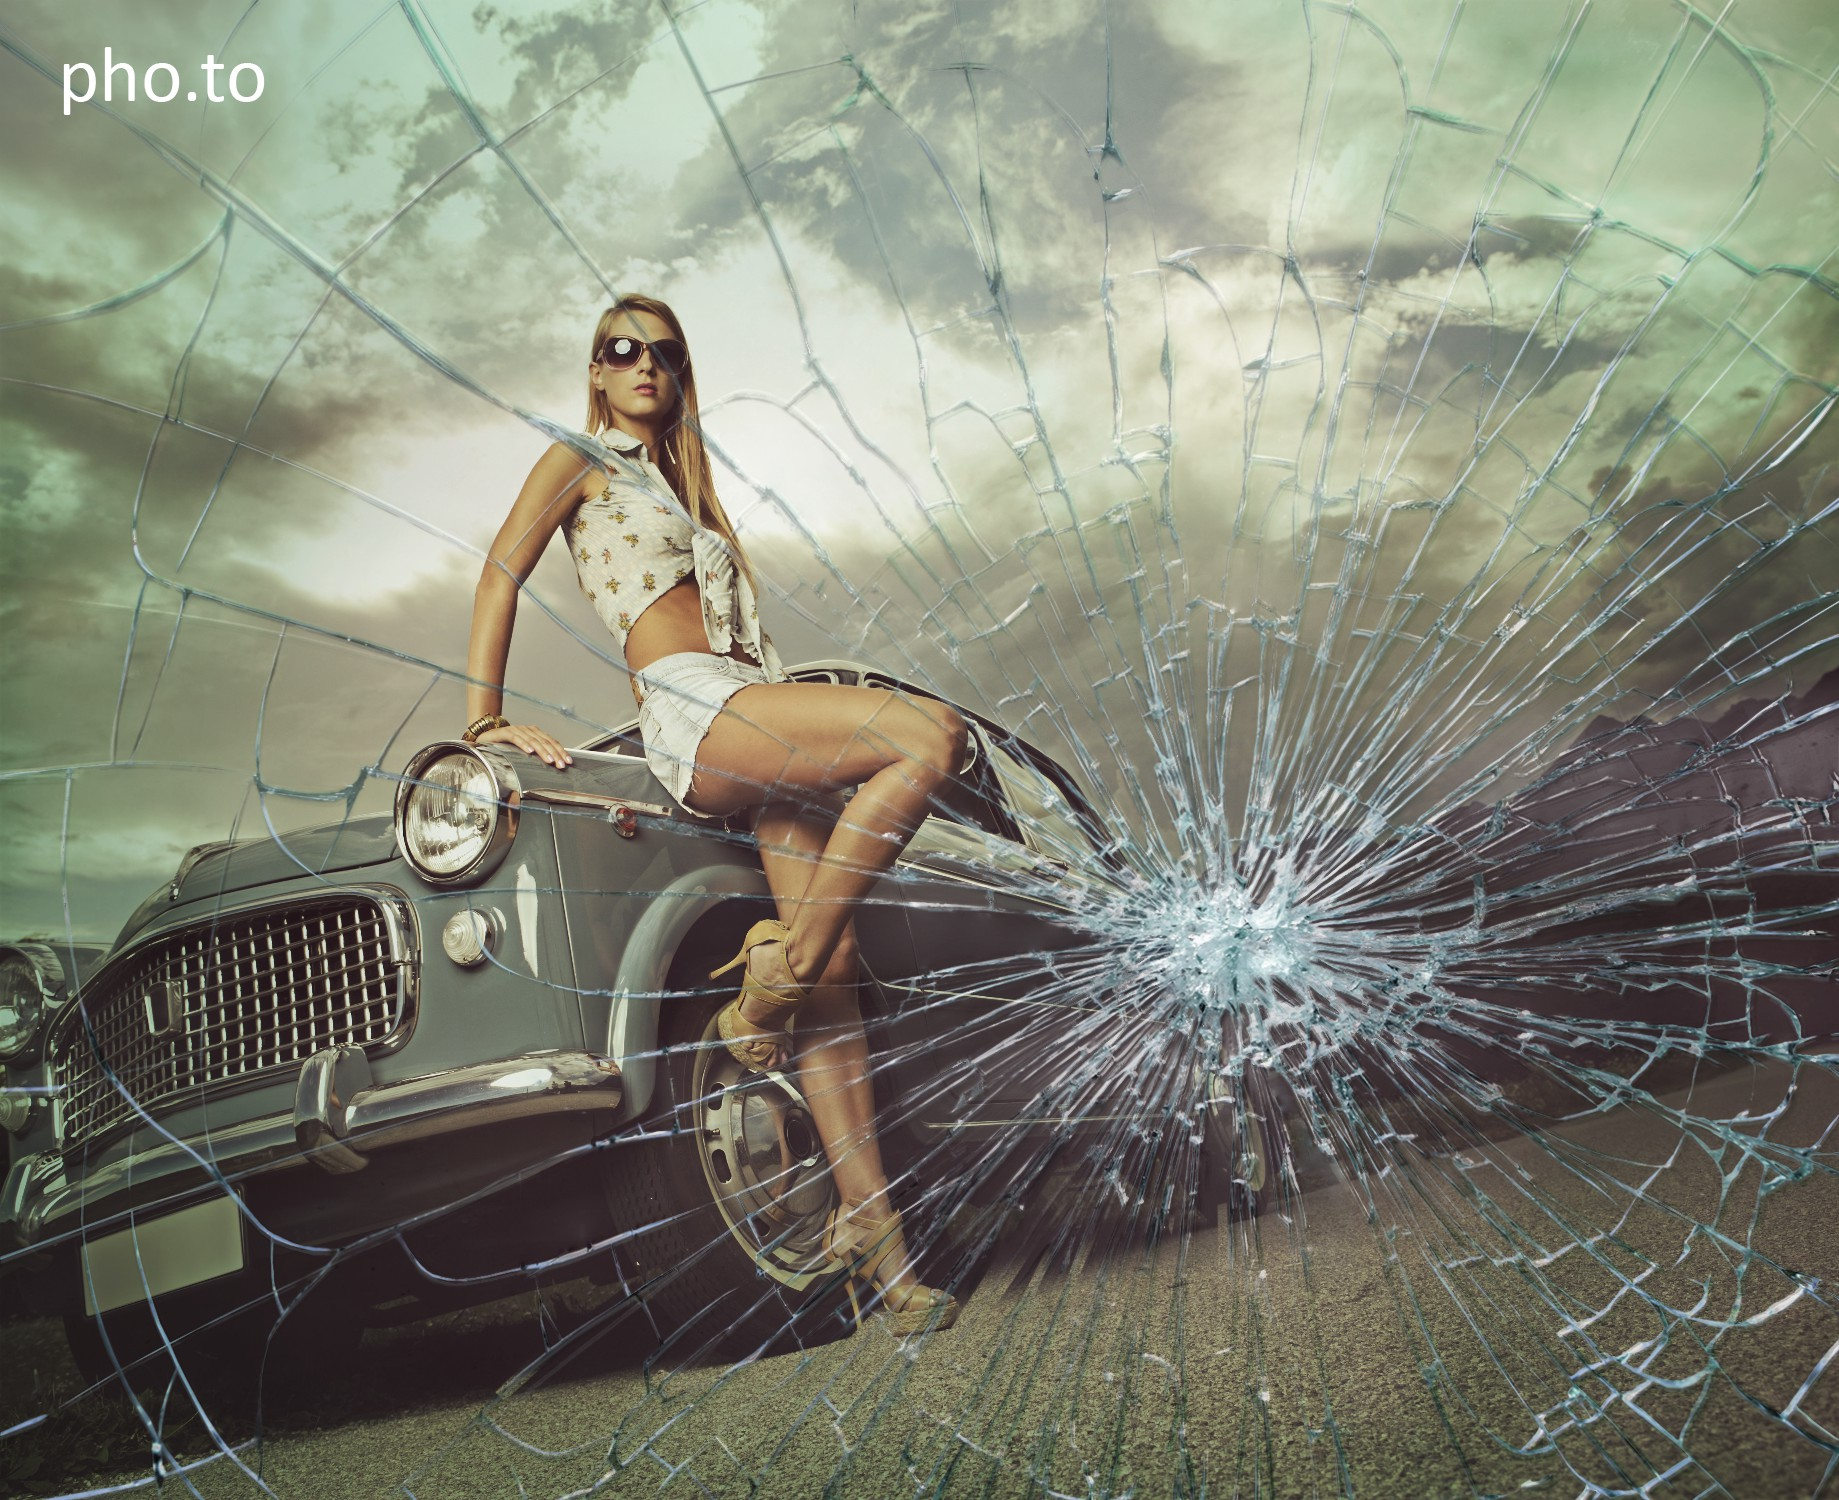 Broken glass texture added online to a photo of a fashion model.